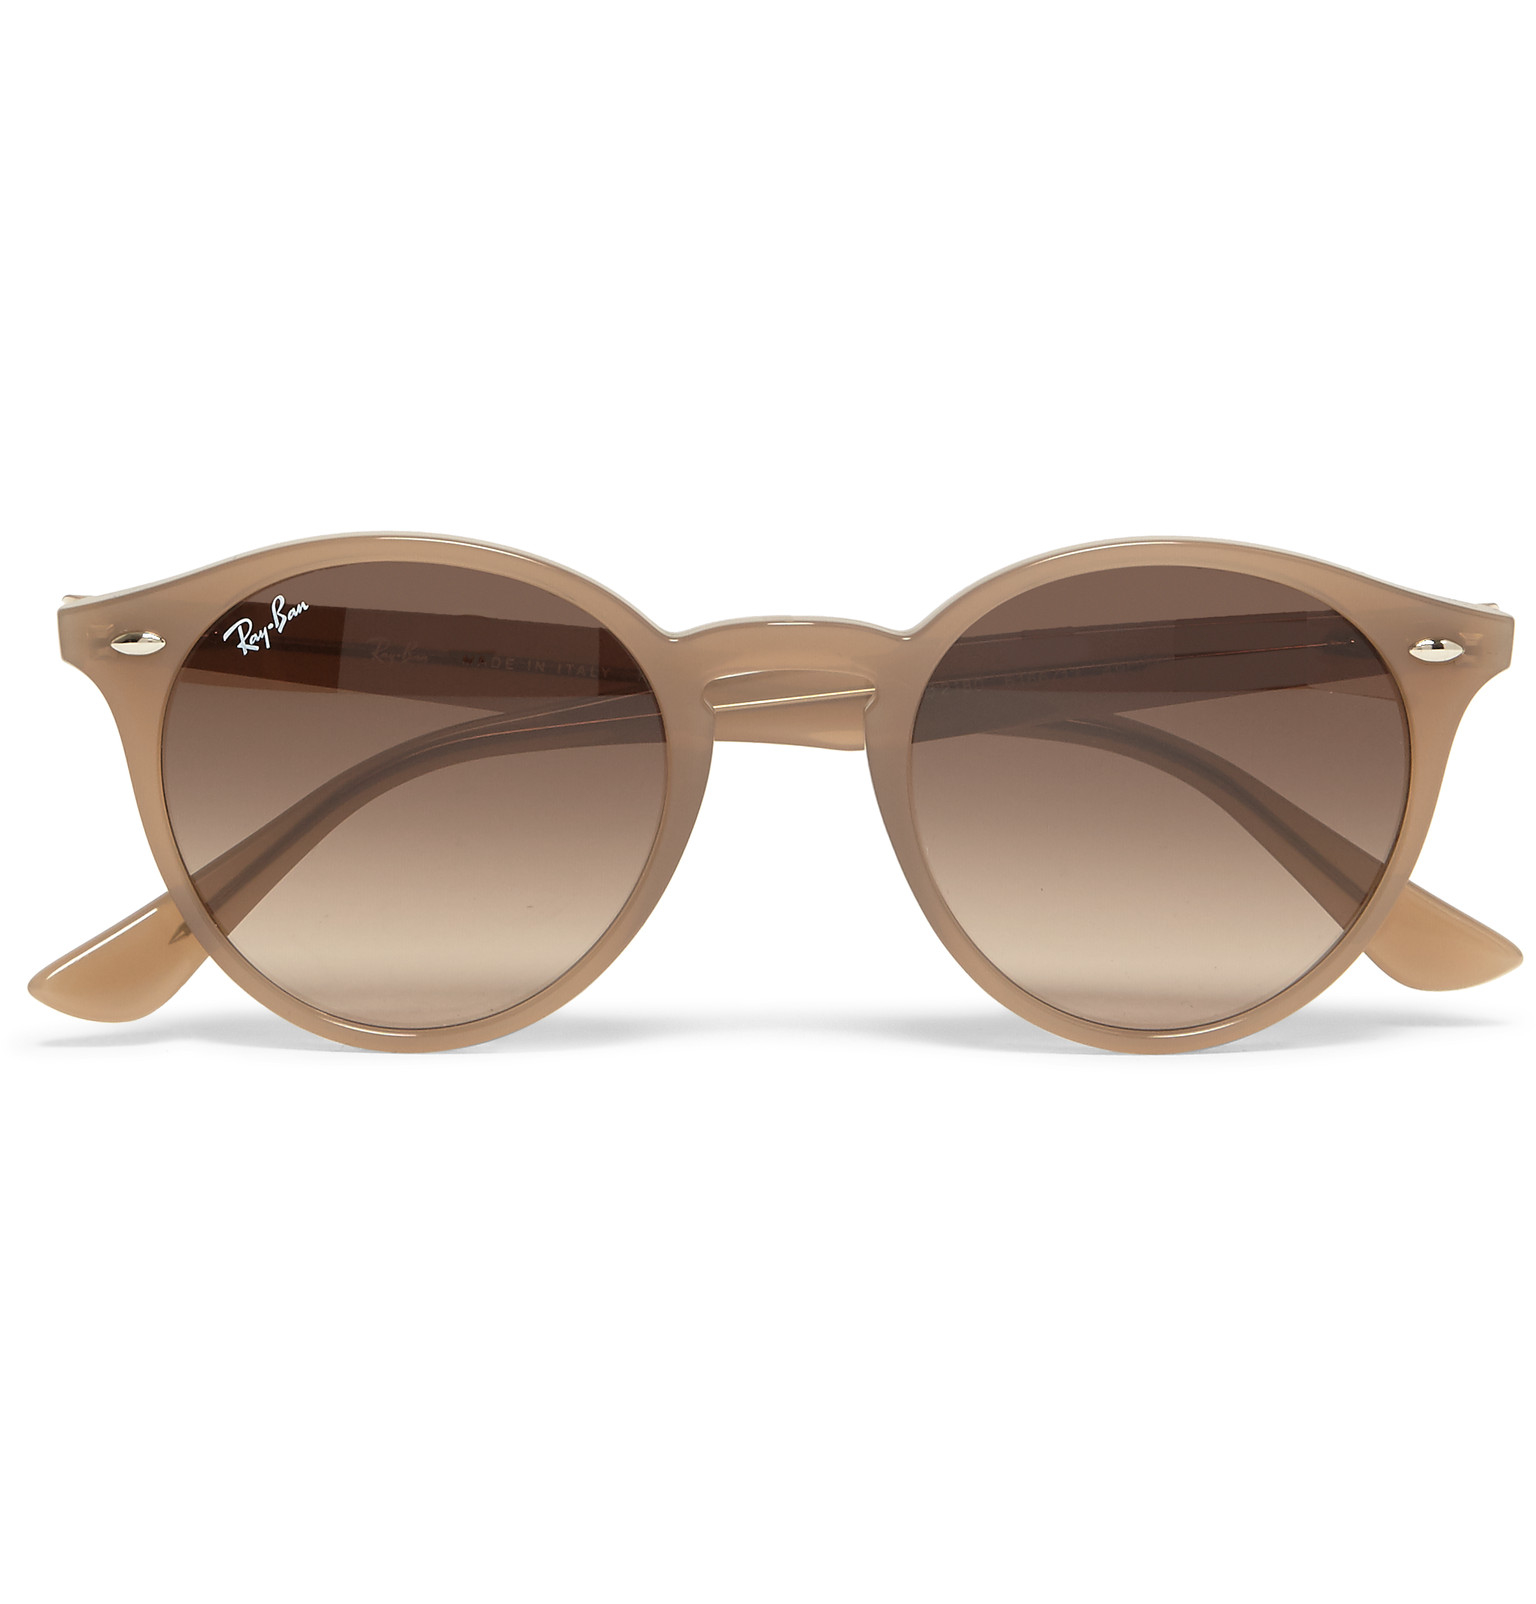 90070f80e8fe5 Ray-Ban Round-frame Acetate Sunglasses in Natural for Men - Lyst